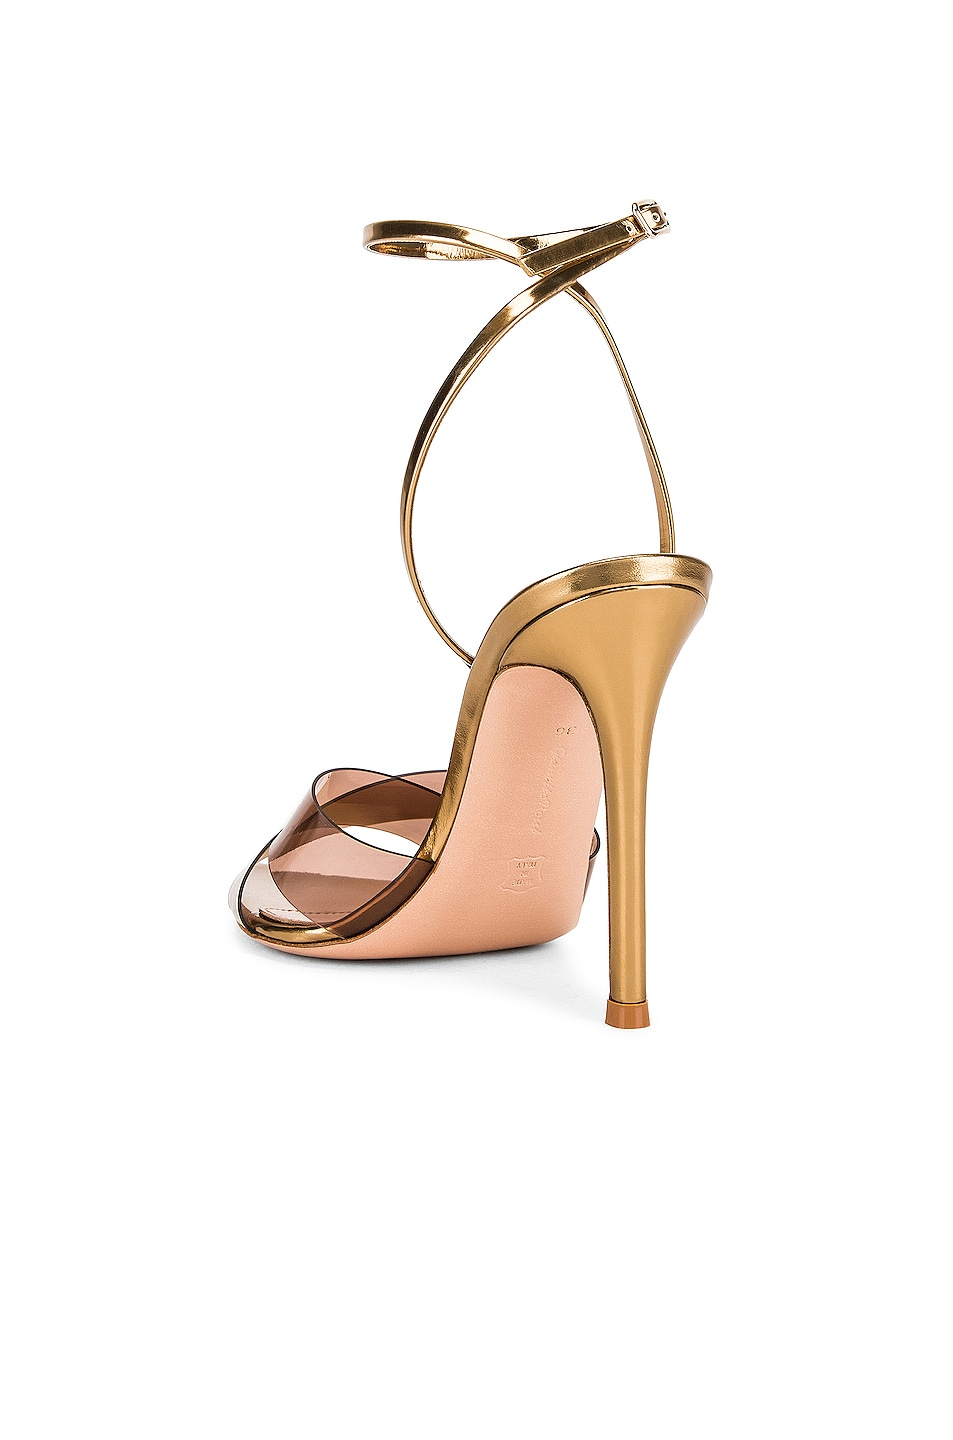 Image 3 of Gianvito Rossi Stark Plexi Ankle Strap Heels in Blush & Gold